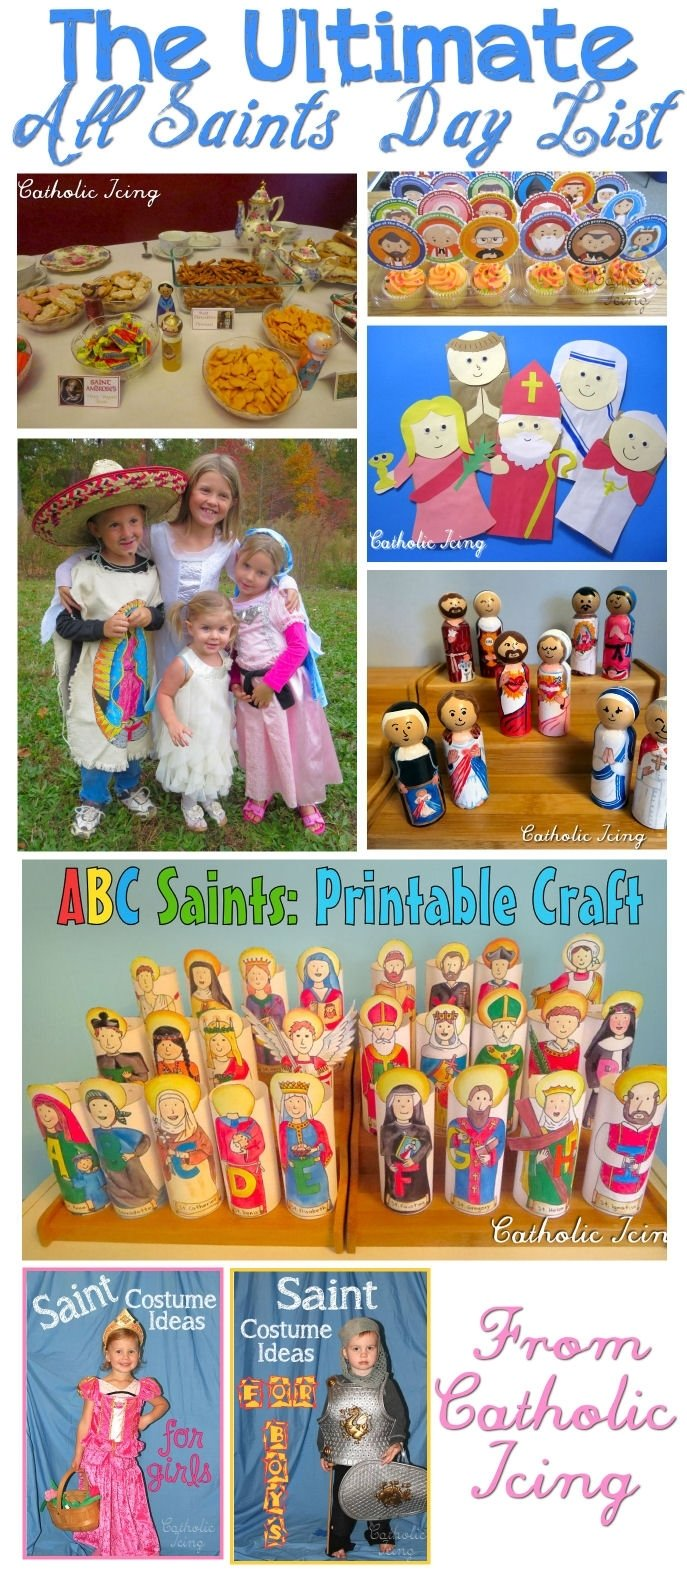 all saints' day party ideas for kids